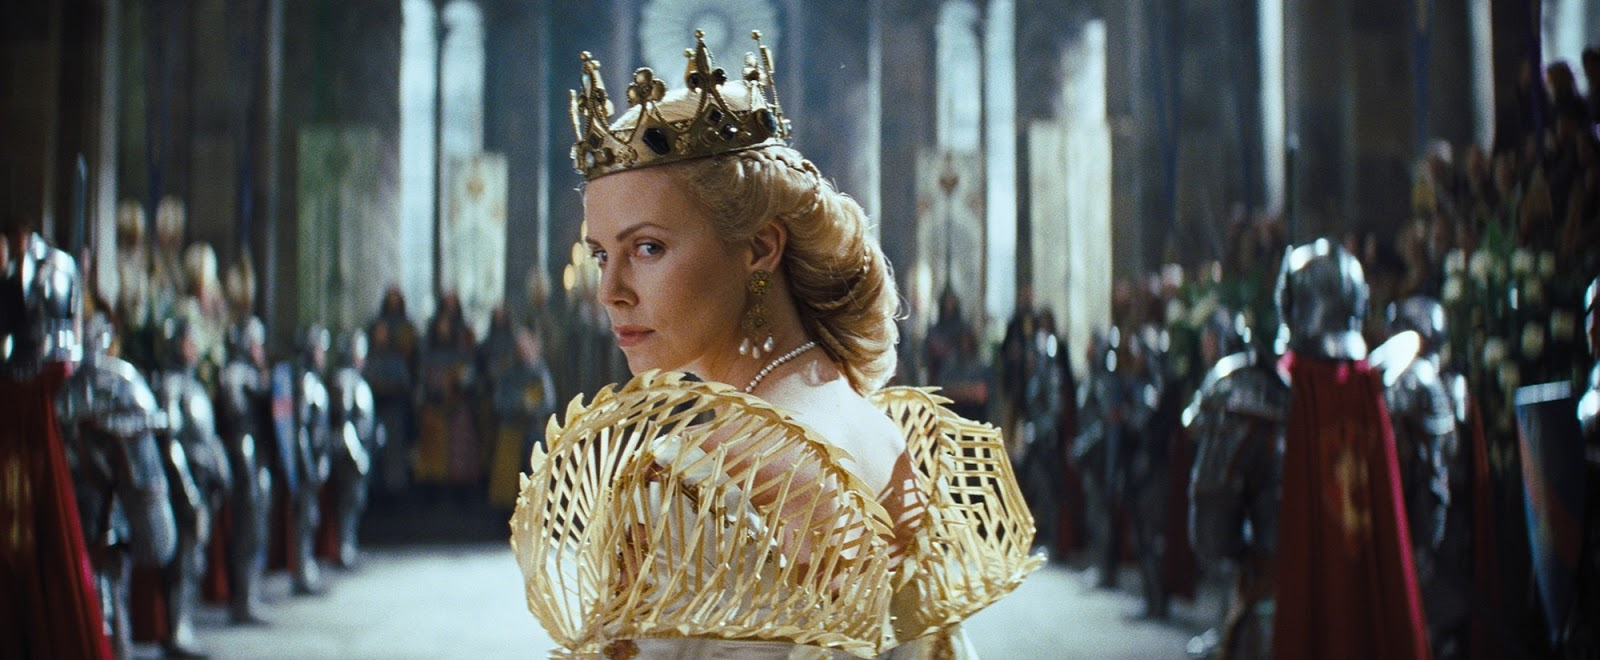 Jennifer Bayley Costume Amp Jewellery Snow White And The Huntsman Ravenna